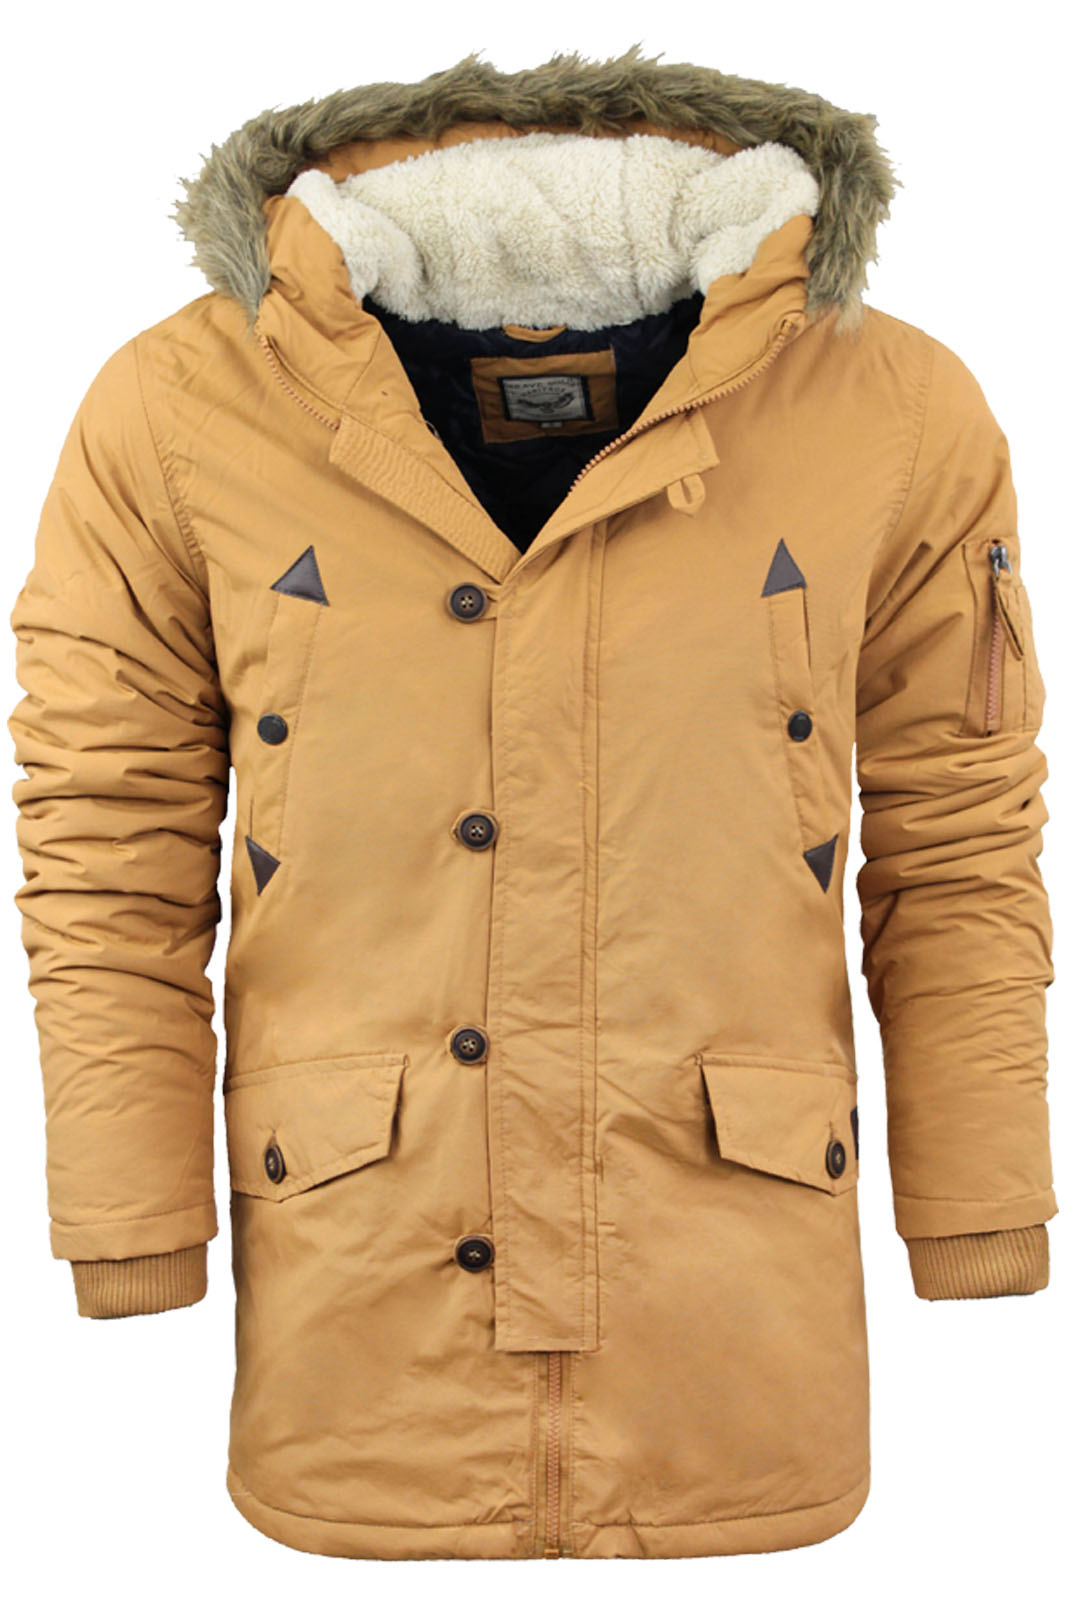 Mens Parka Parker Hood Padded Lined Winter Jacket Faux Fur